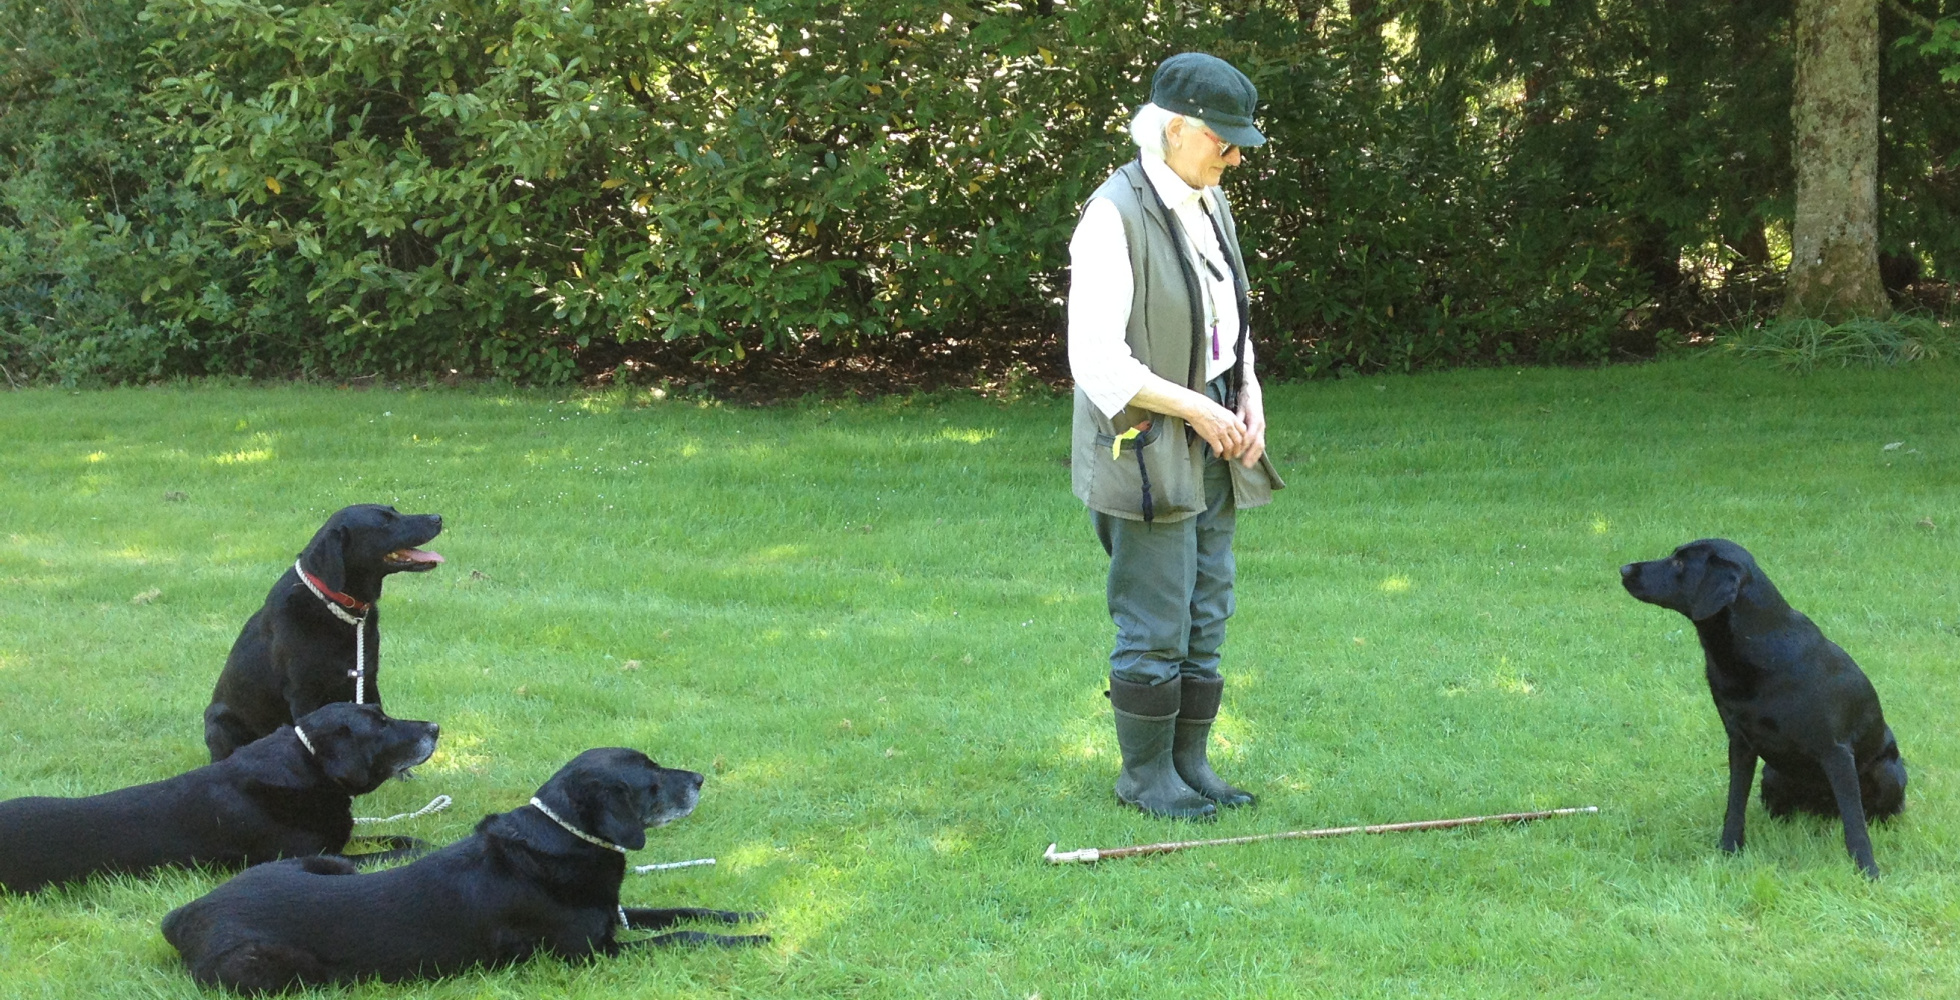 Ann Playle surrounded by black labs, working her beloved dogs